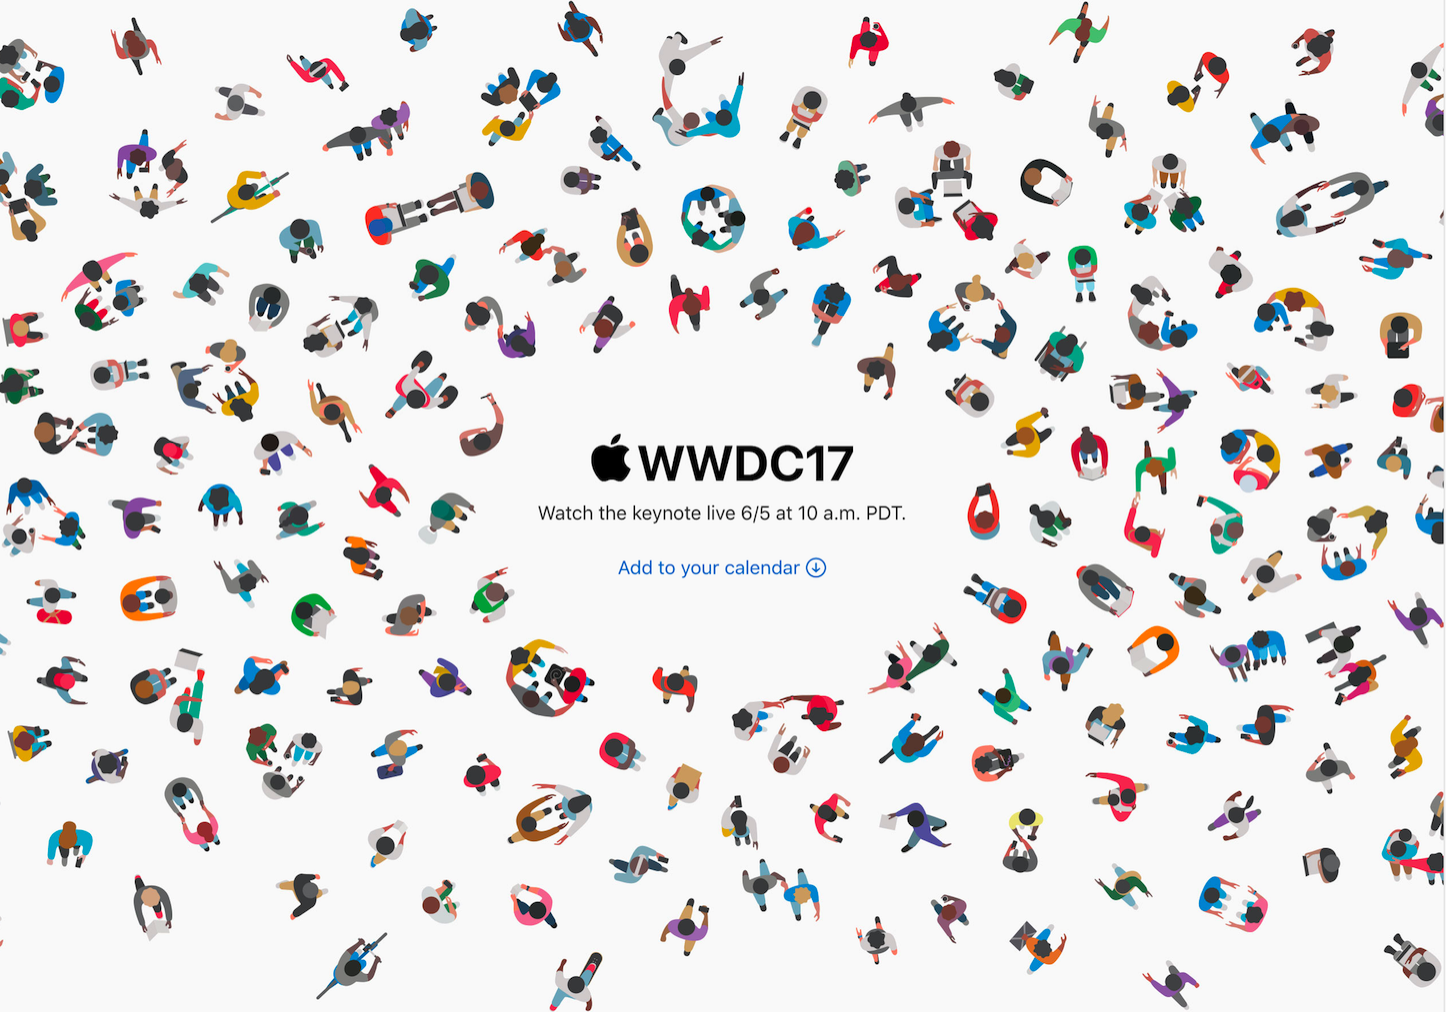 Live for wwdc 2017